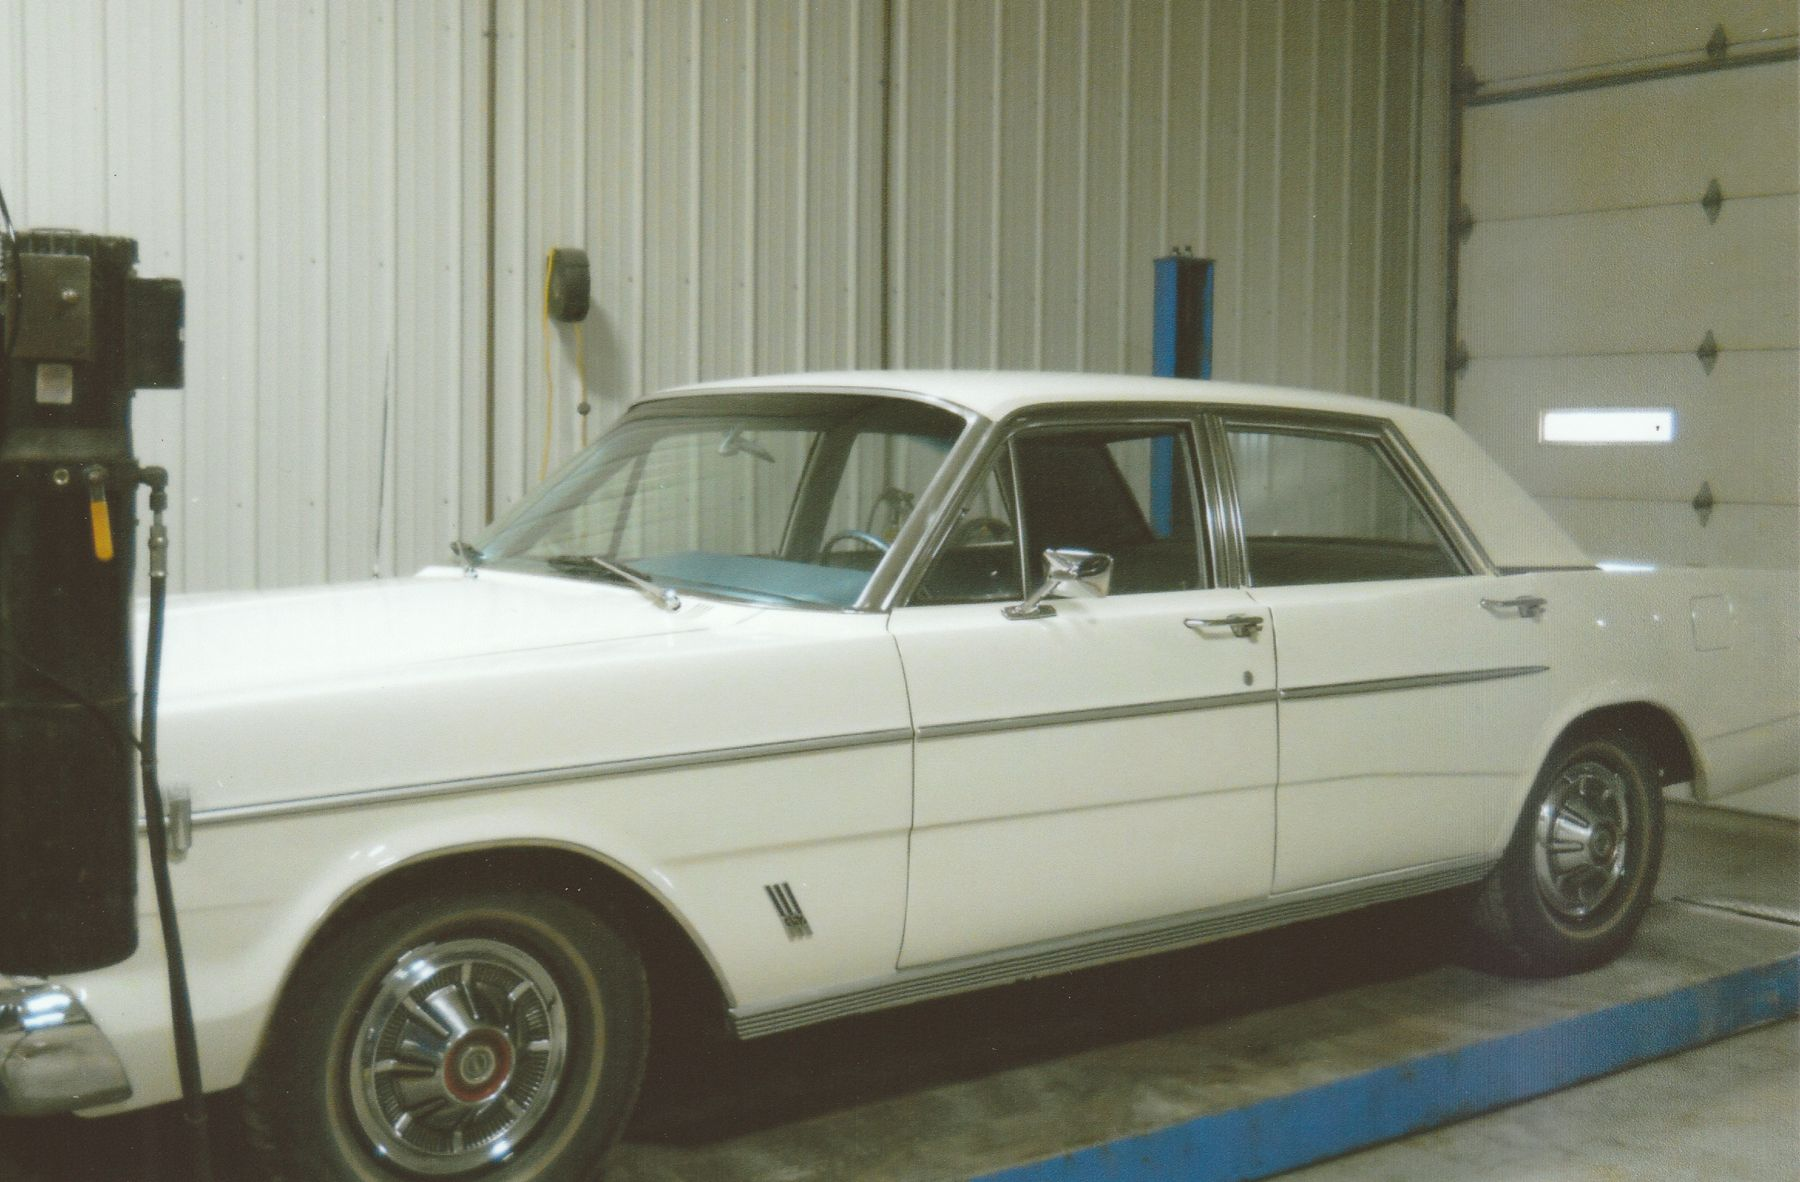 1966 Ford Galaxie 500 full length in garage